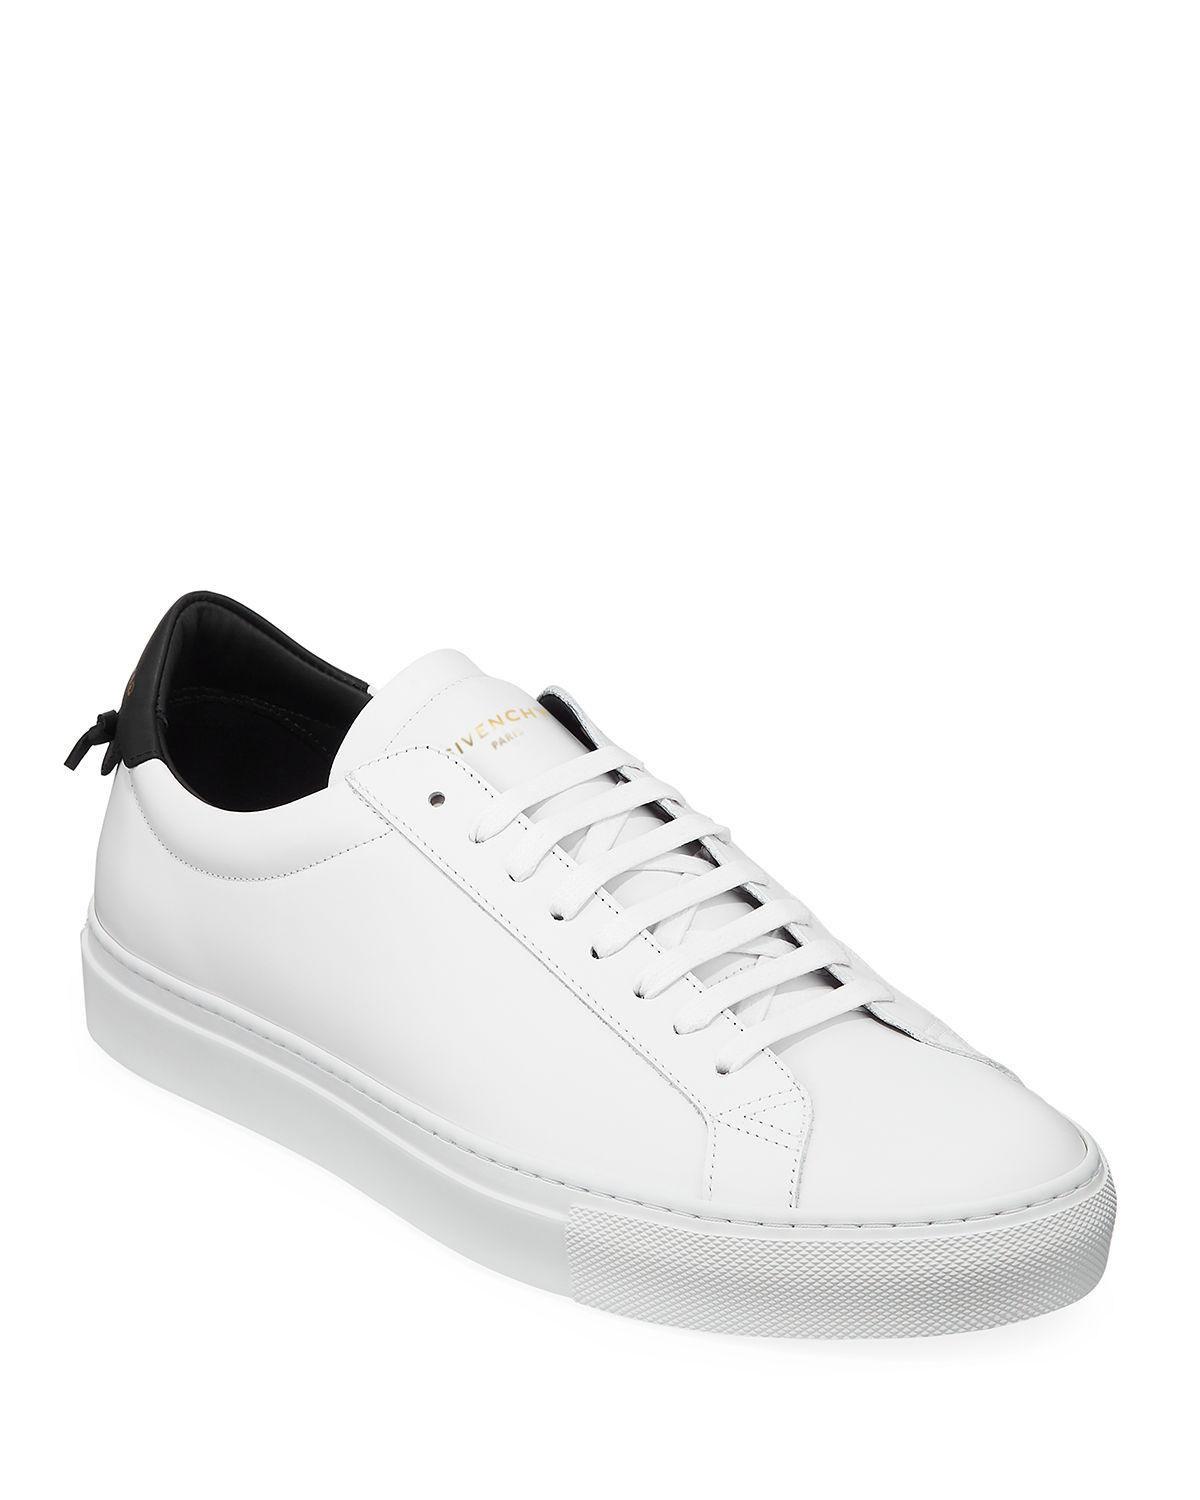 Givenchy Men s Urban Street Leather Low-Top Sneakers  41c8b94ad